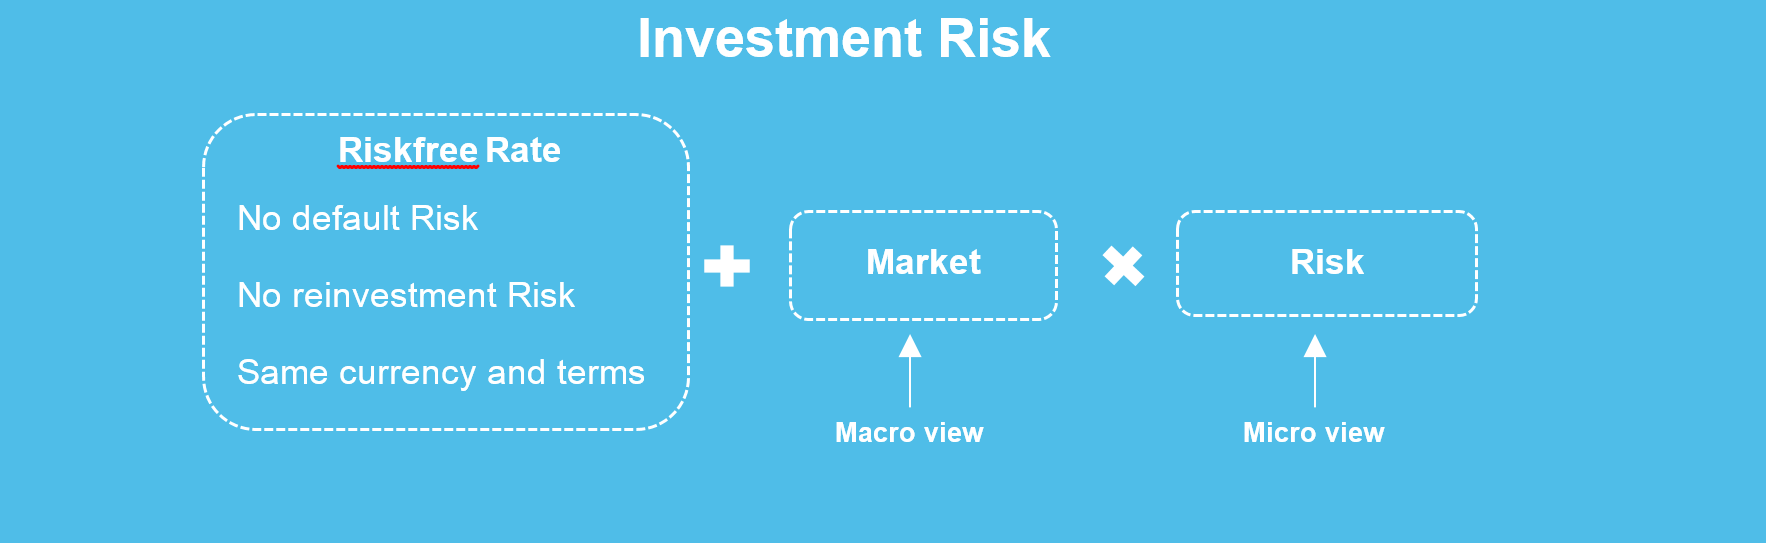 Controlling investment risks in germany magdalena chojnacka kupiec investment